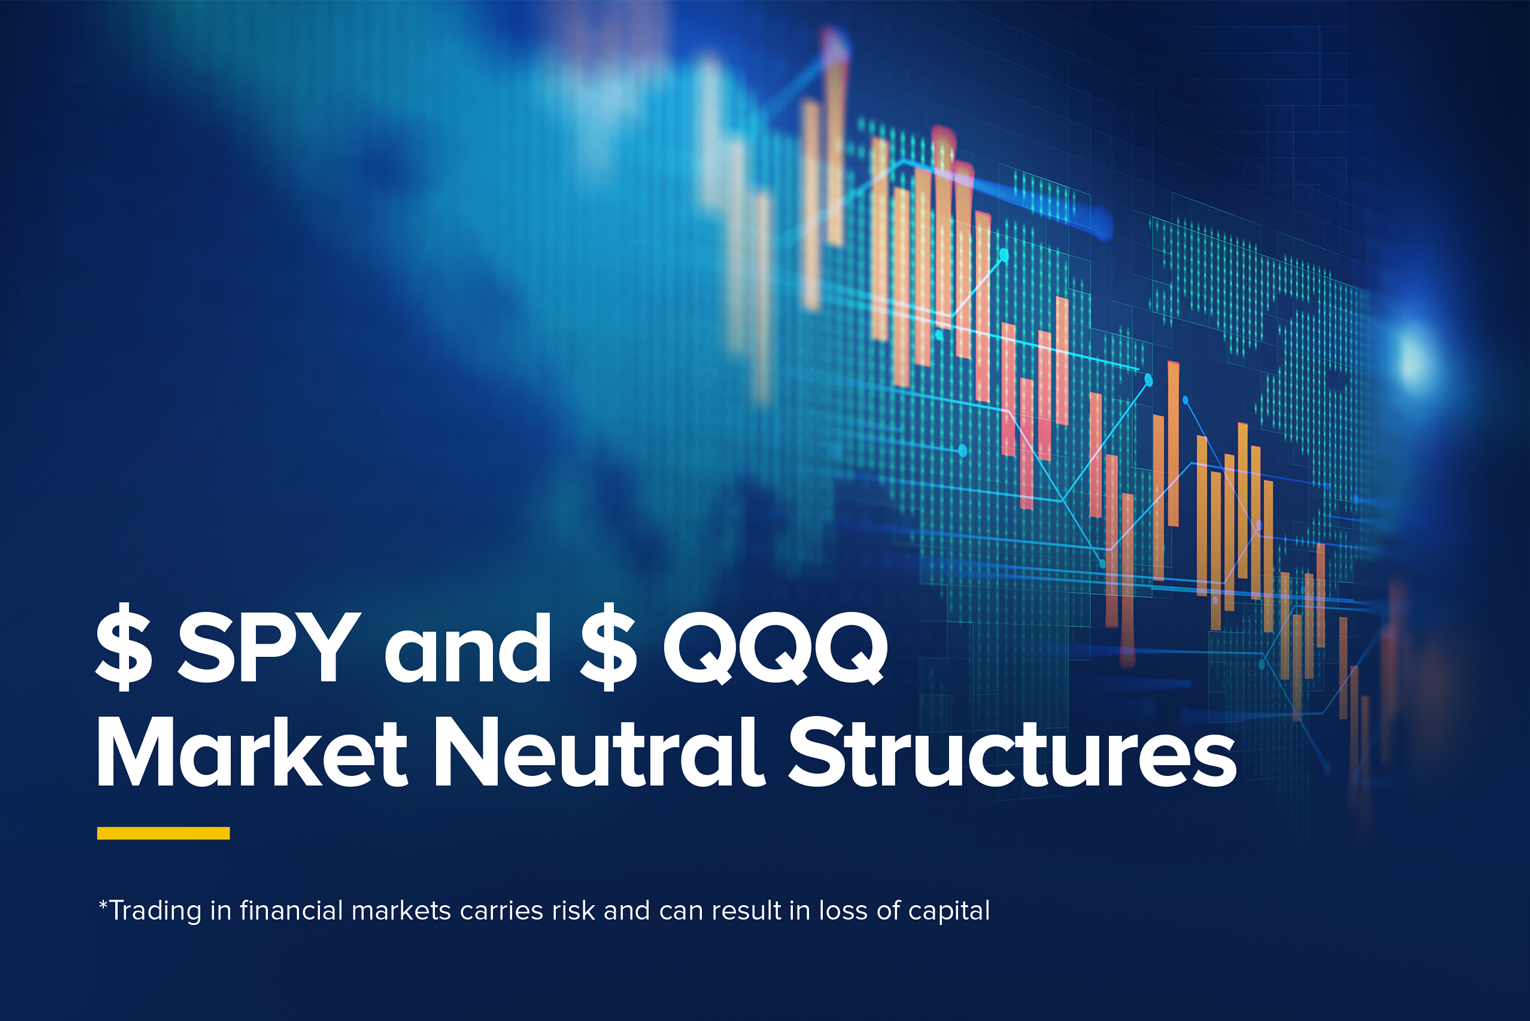 $ SPY and $ QQQ Market Neutral Structures